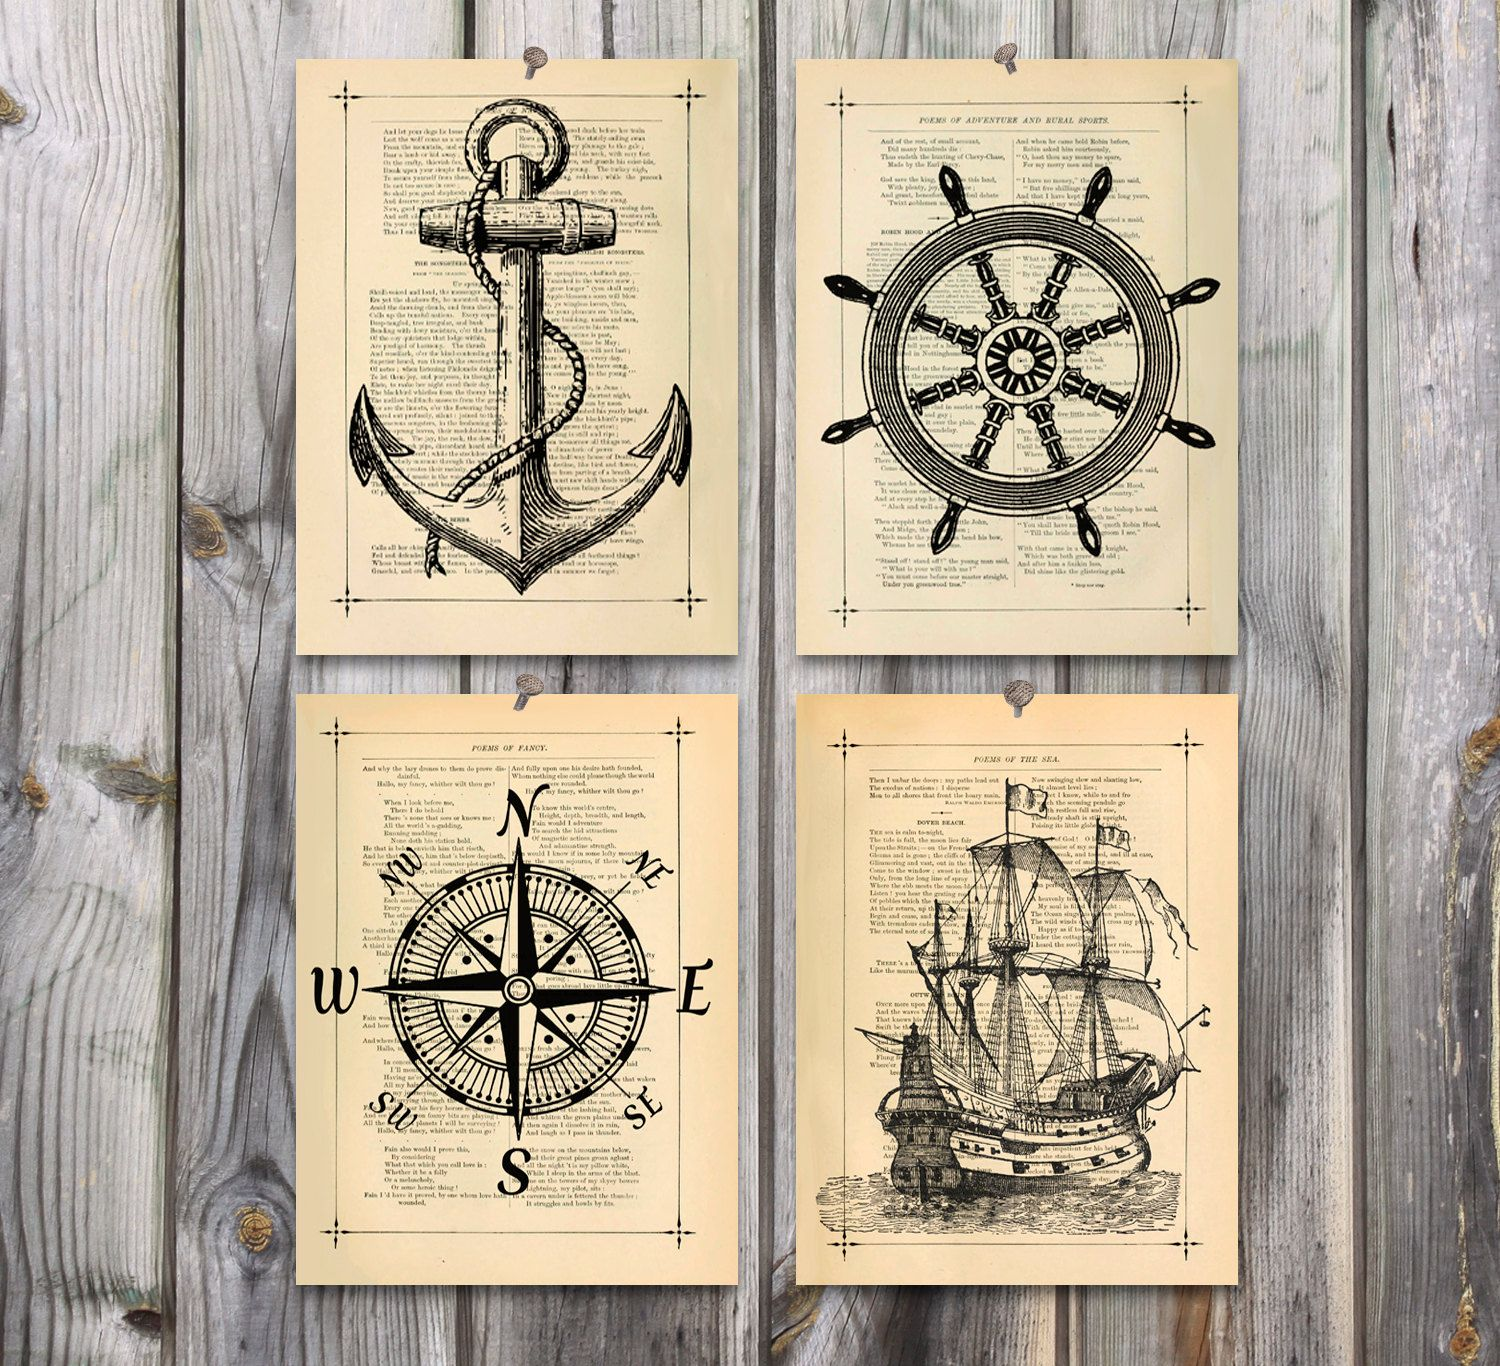 Baby Nash S Vintage Nautical Nursery: Nautical Art Poster Print Set Antique Drawing By